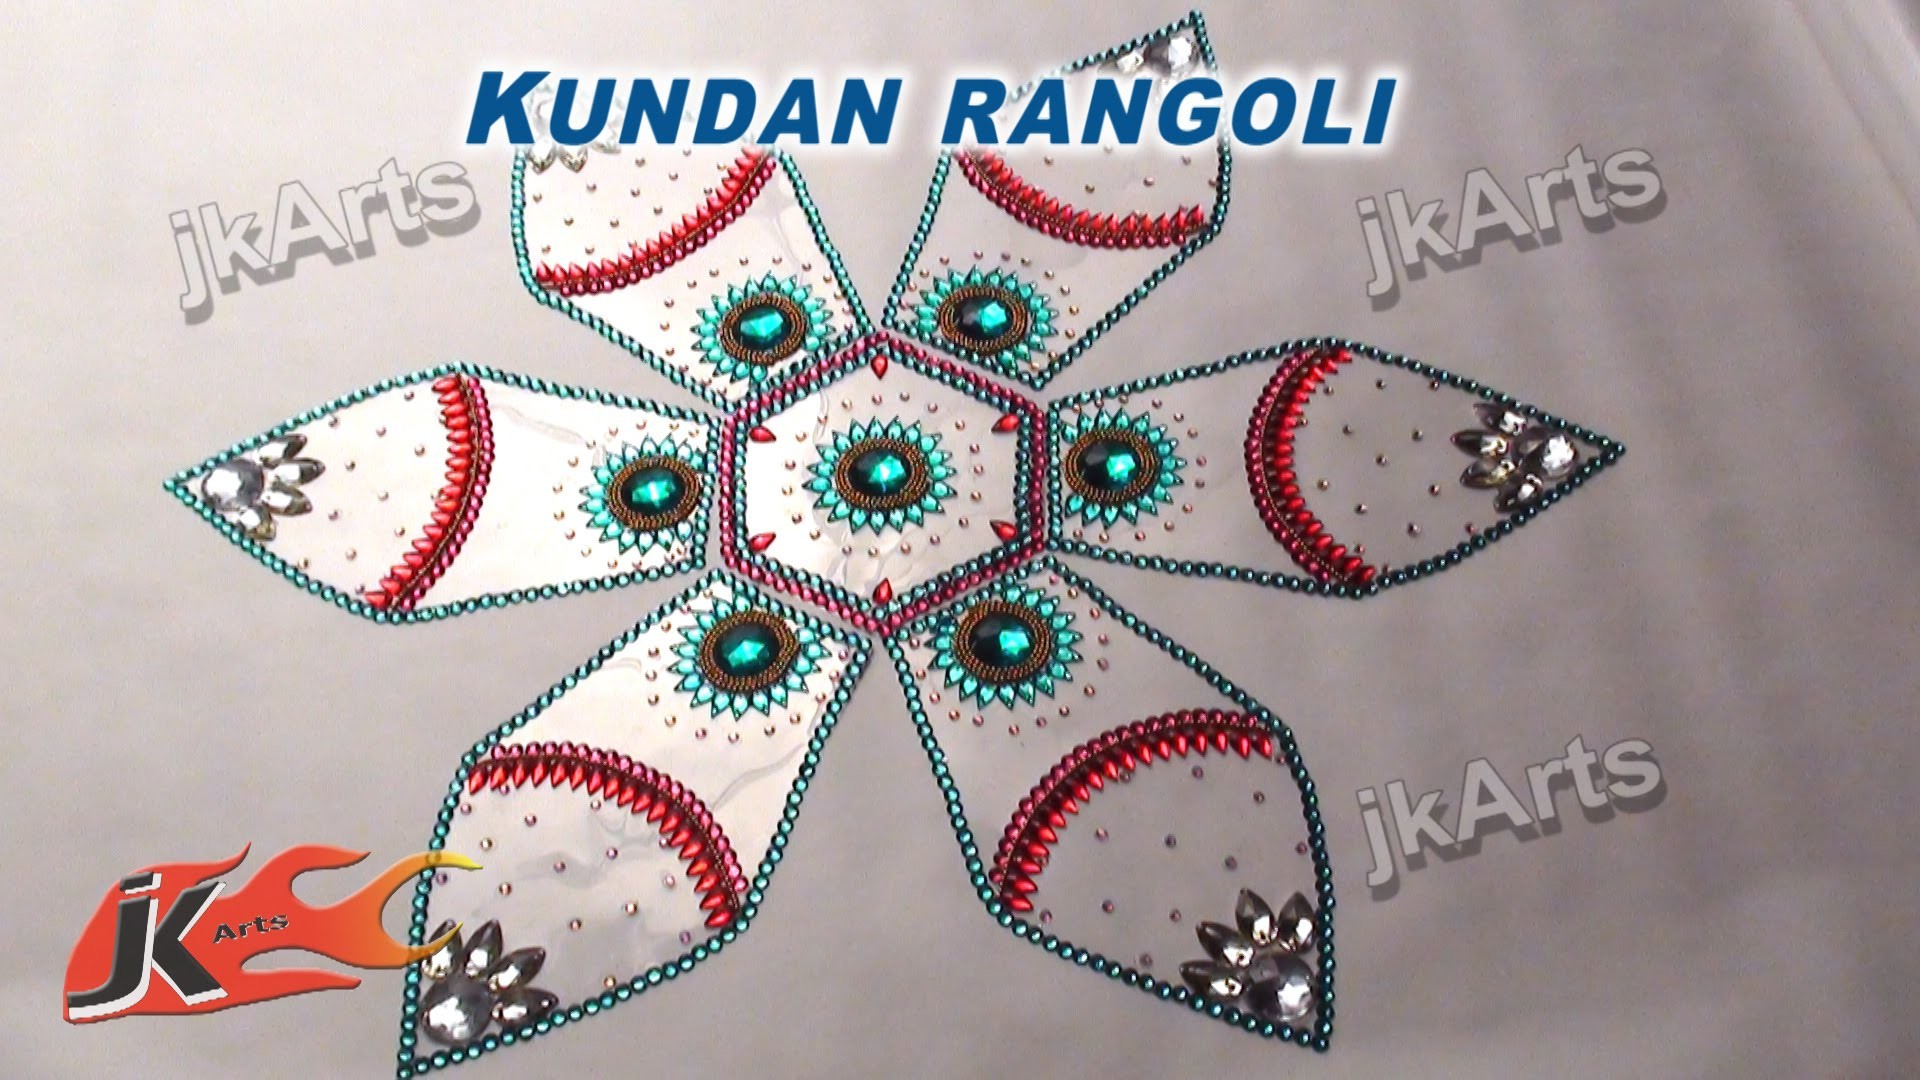 Diy kundan rangoli design on ohp sheet how to make jk for Home made rangoli designs